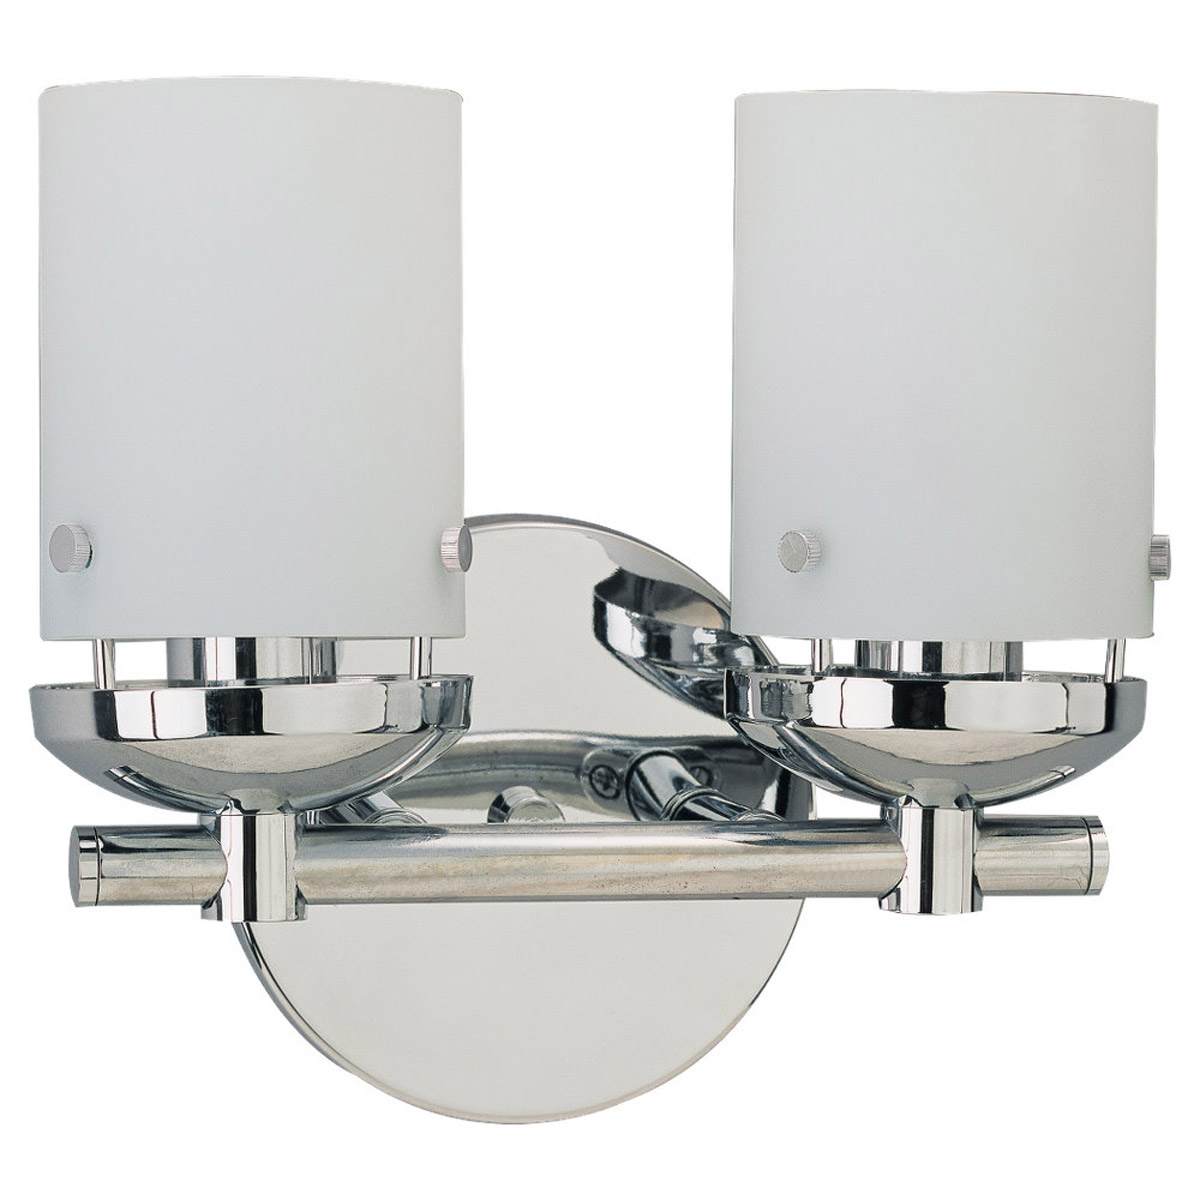 Sea Gull Lighting Bliss 2 Light Bath Vanity in Chrome 40044-05